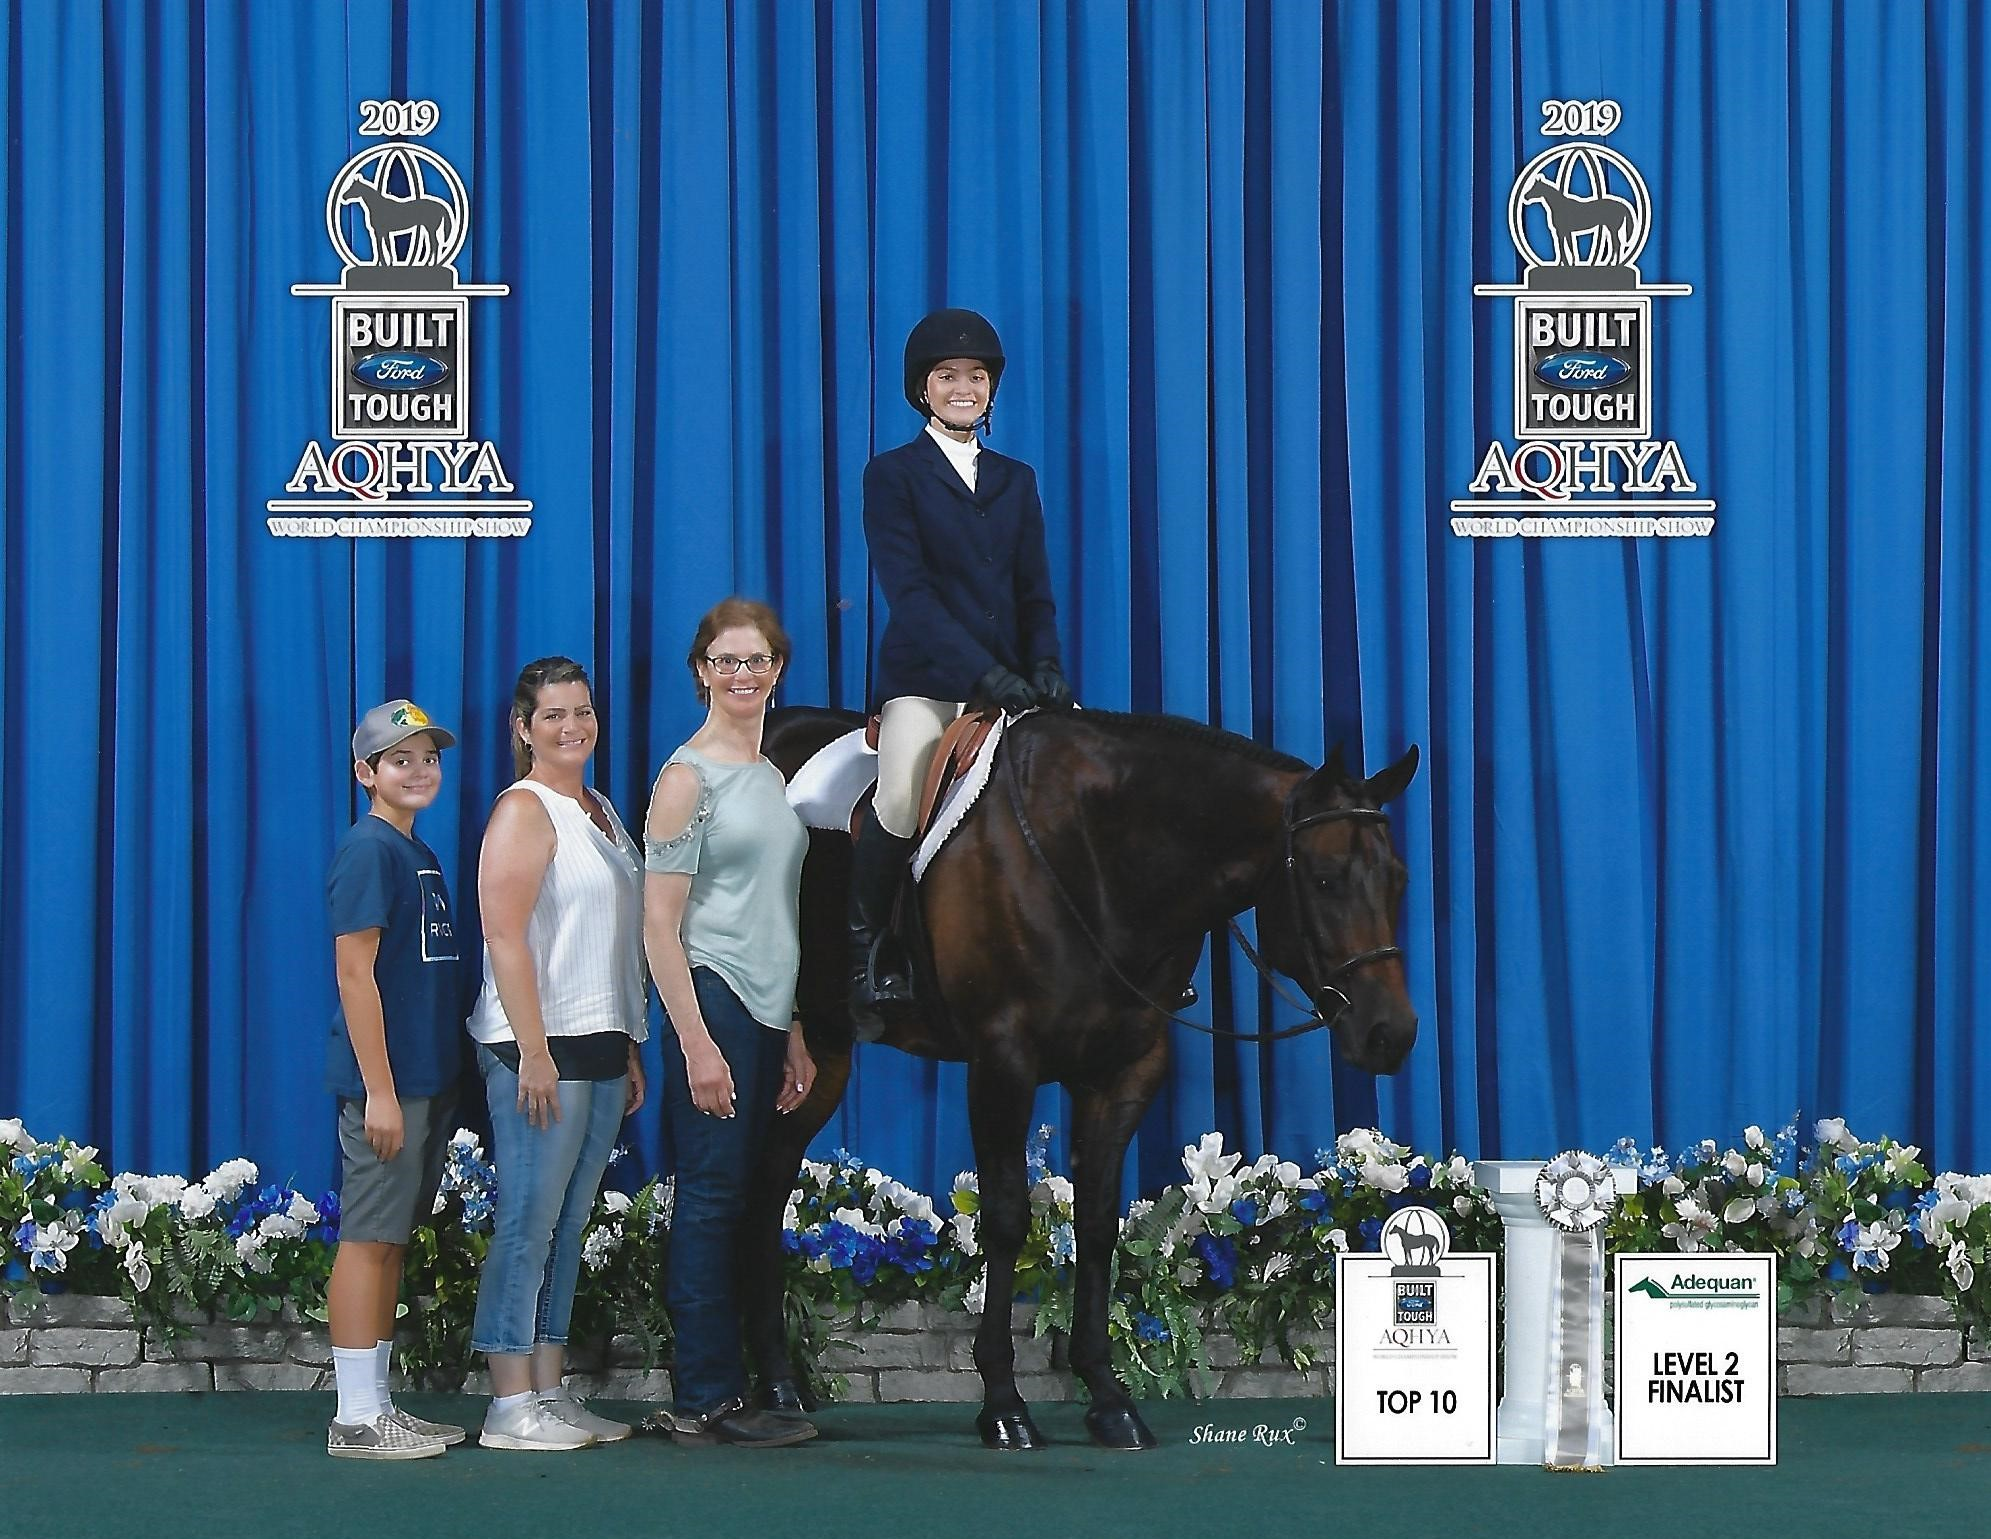 Nadalee Vasquez Equitation World Show 19